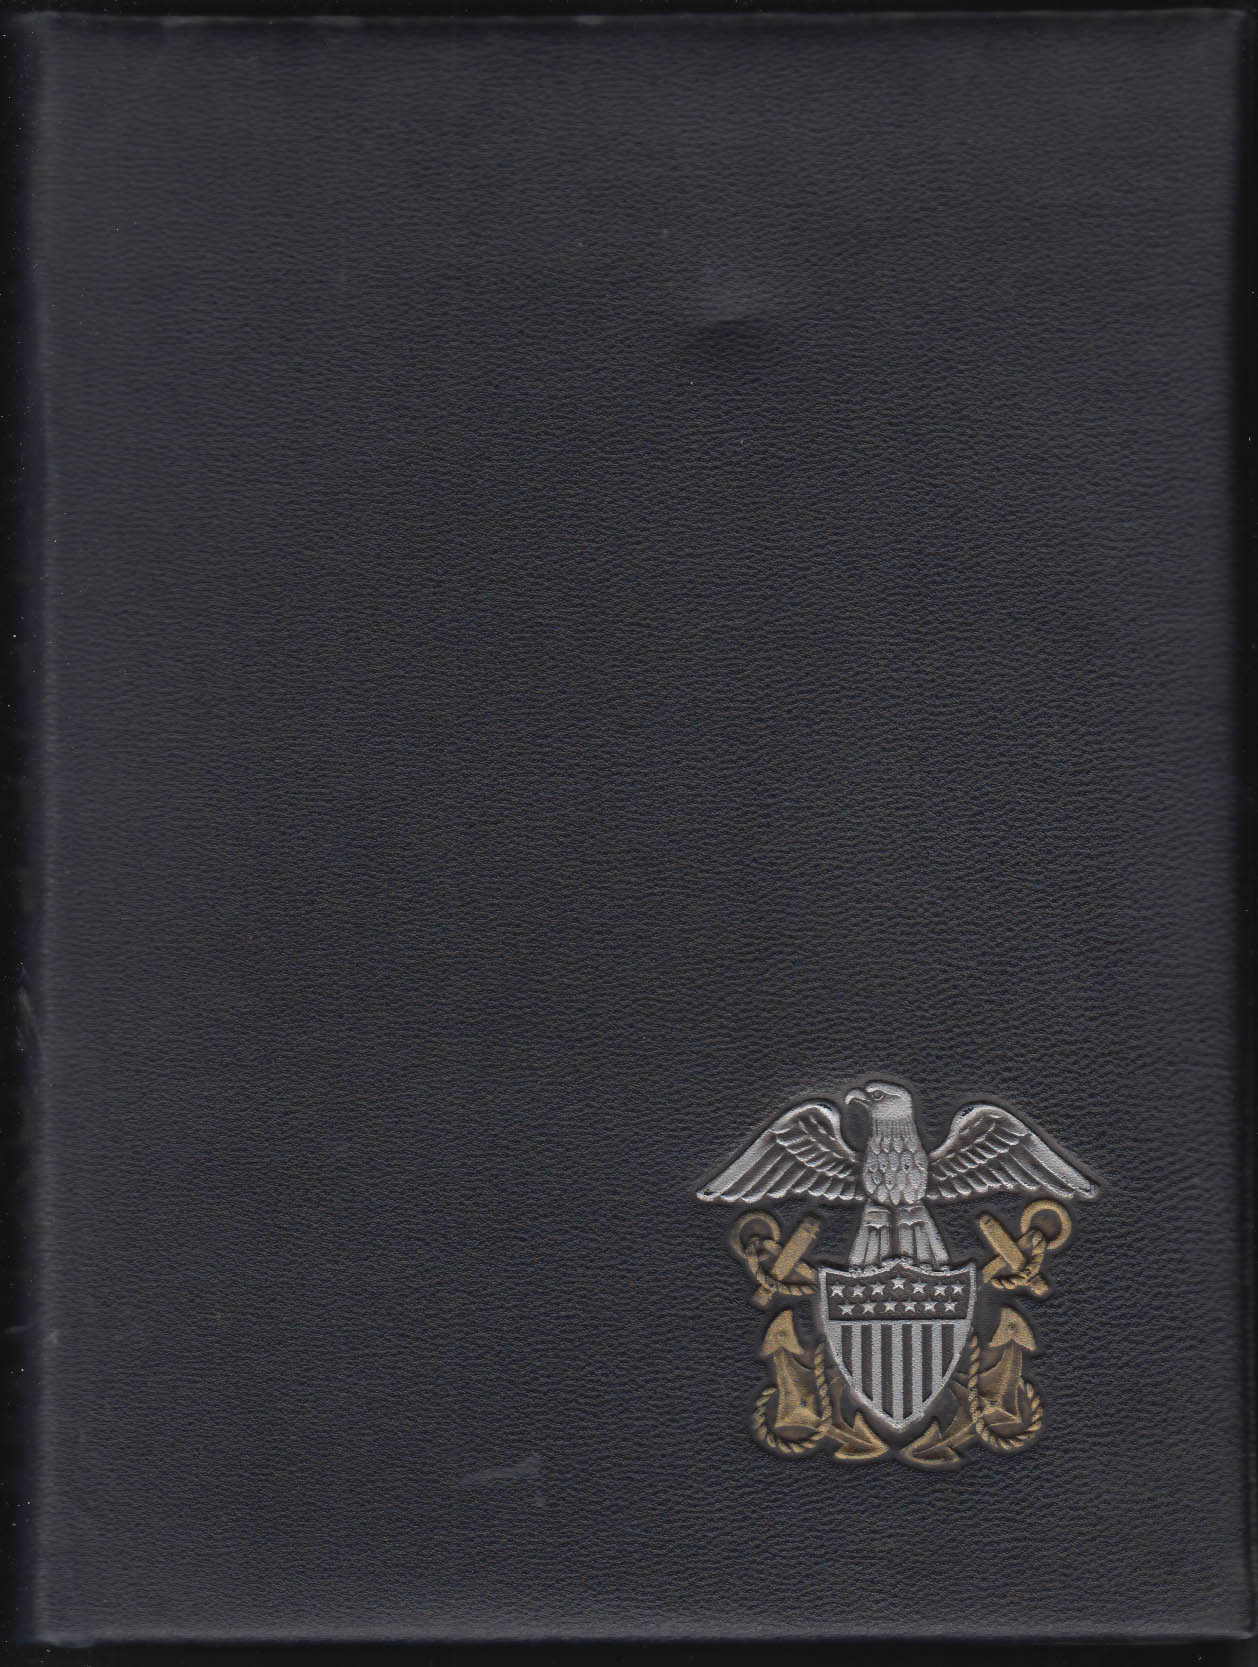 Image for United States Naval Reserve Midshipmen's School Side Boy 1945 Yearbook New York